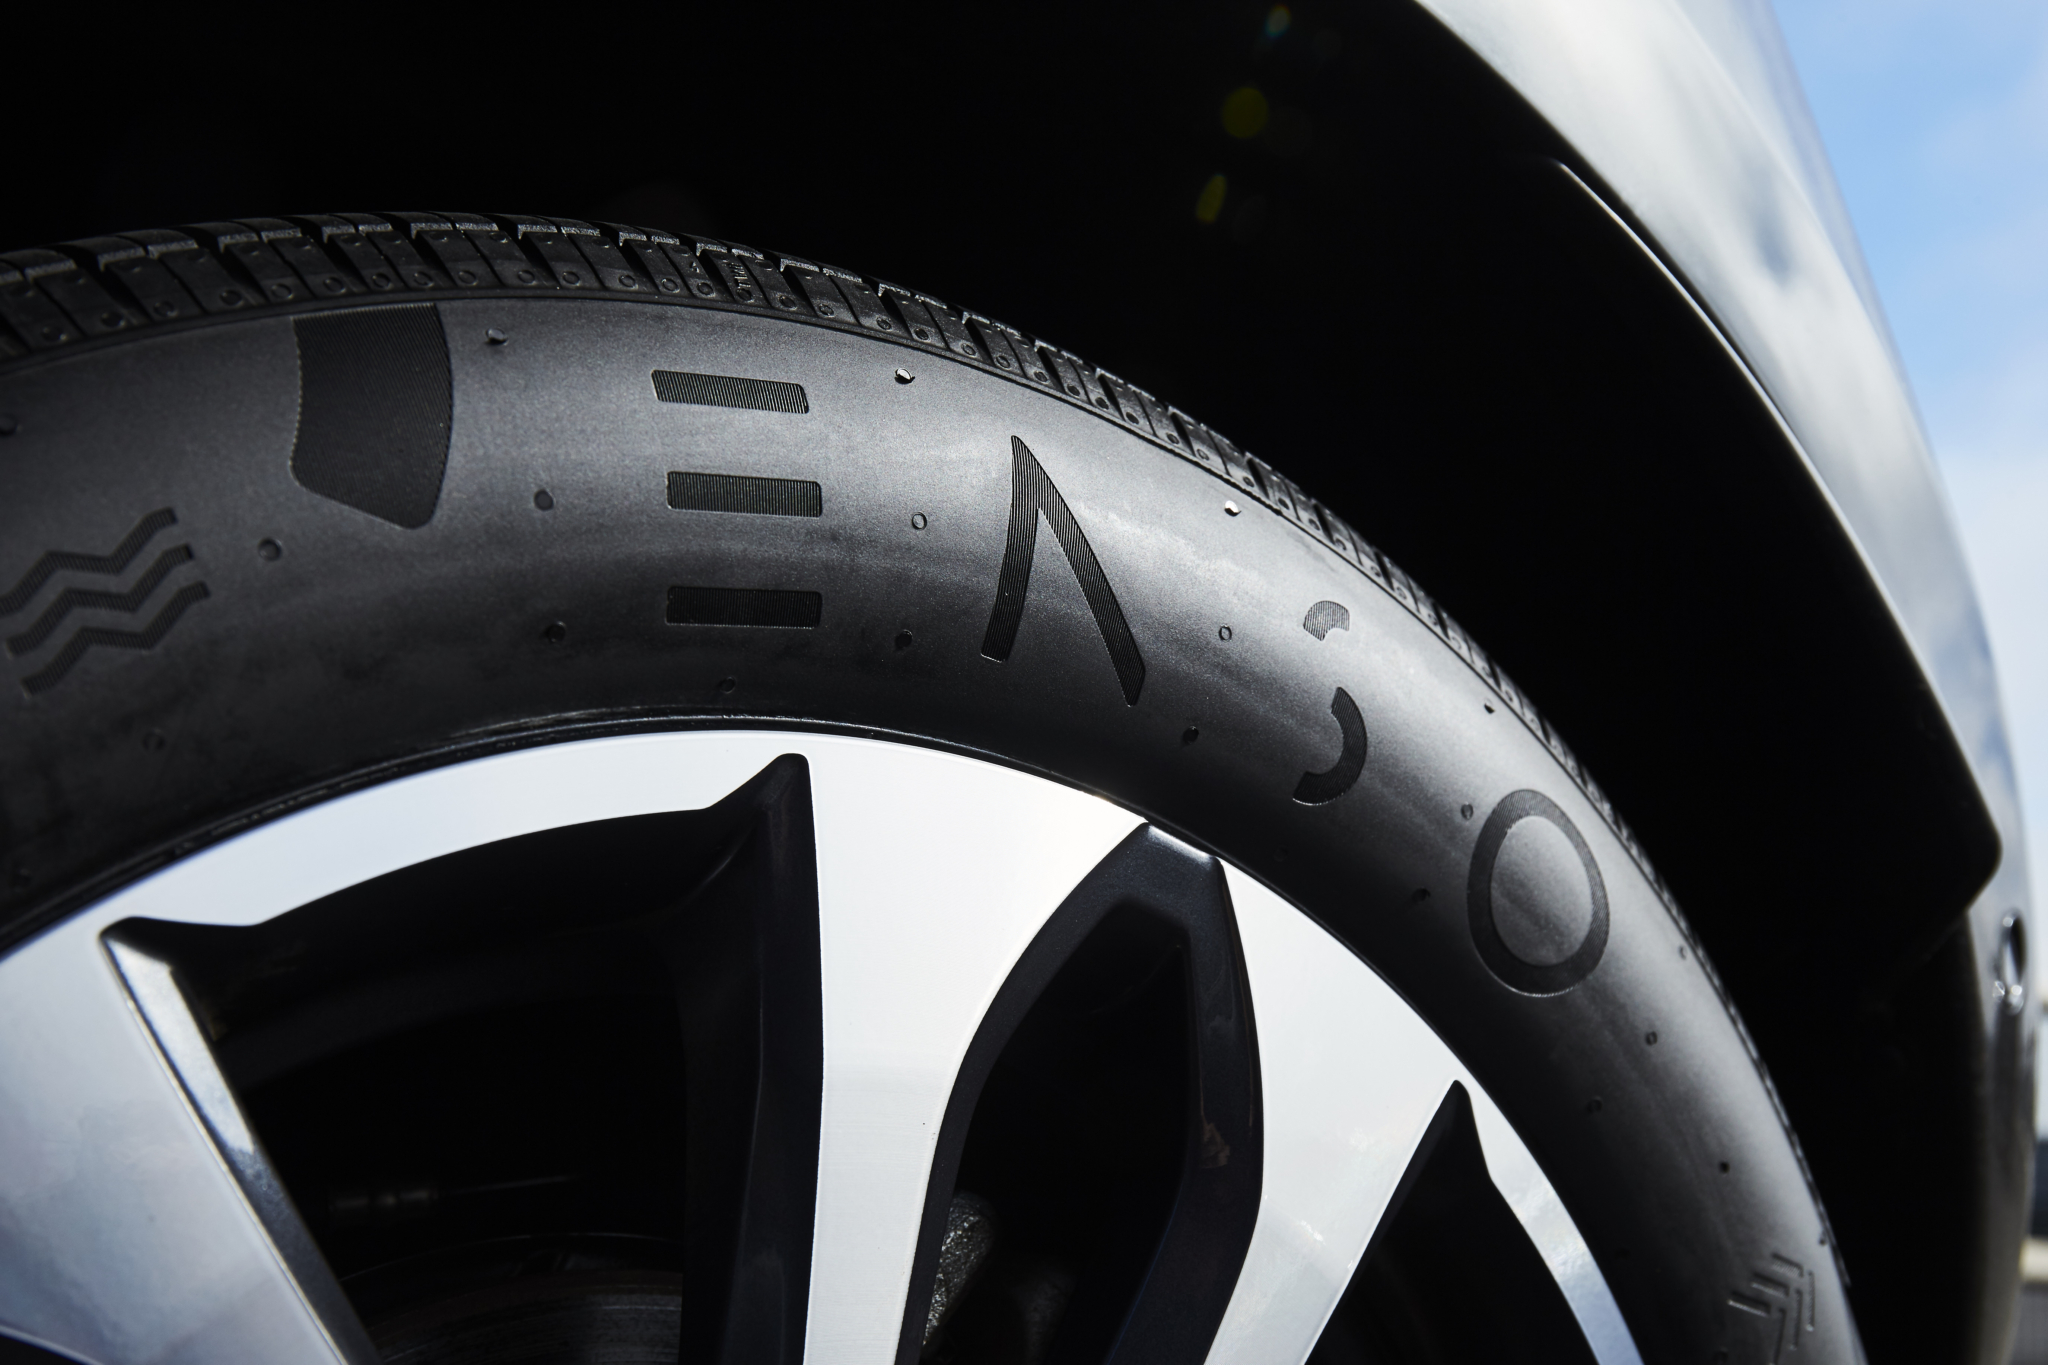 Enso start-up aims to reduce carbon and microplastic emissions with tyres